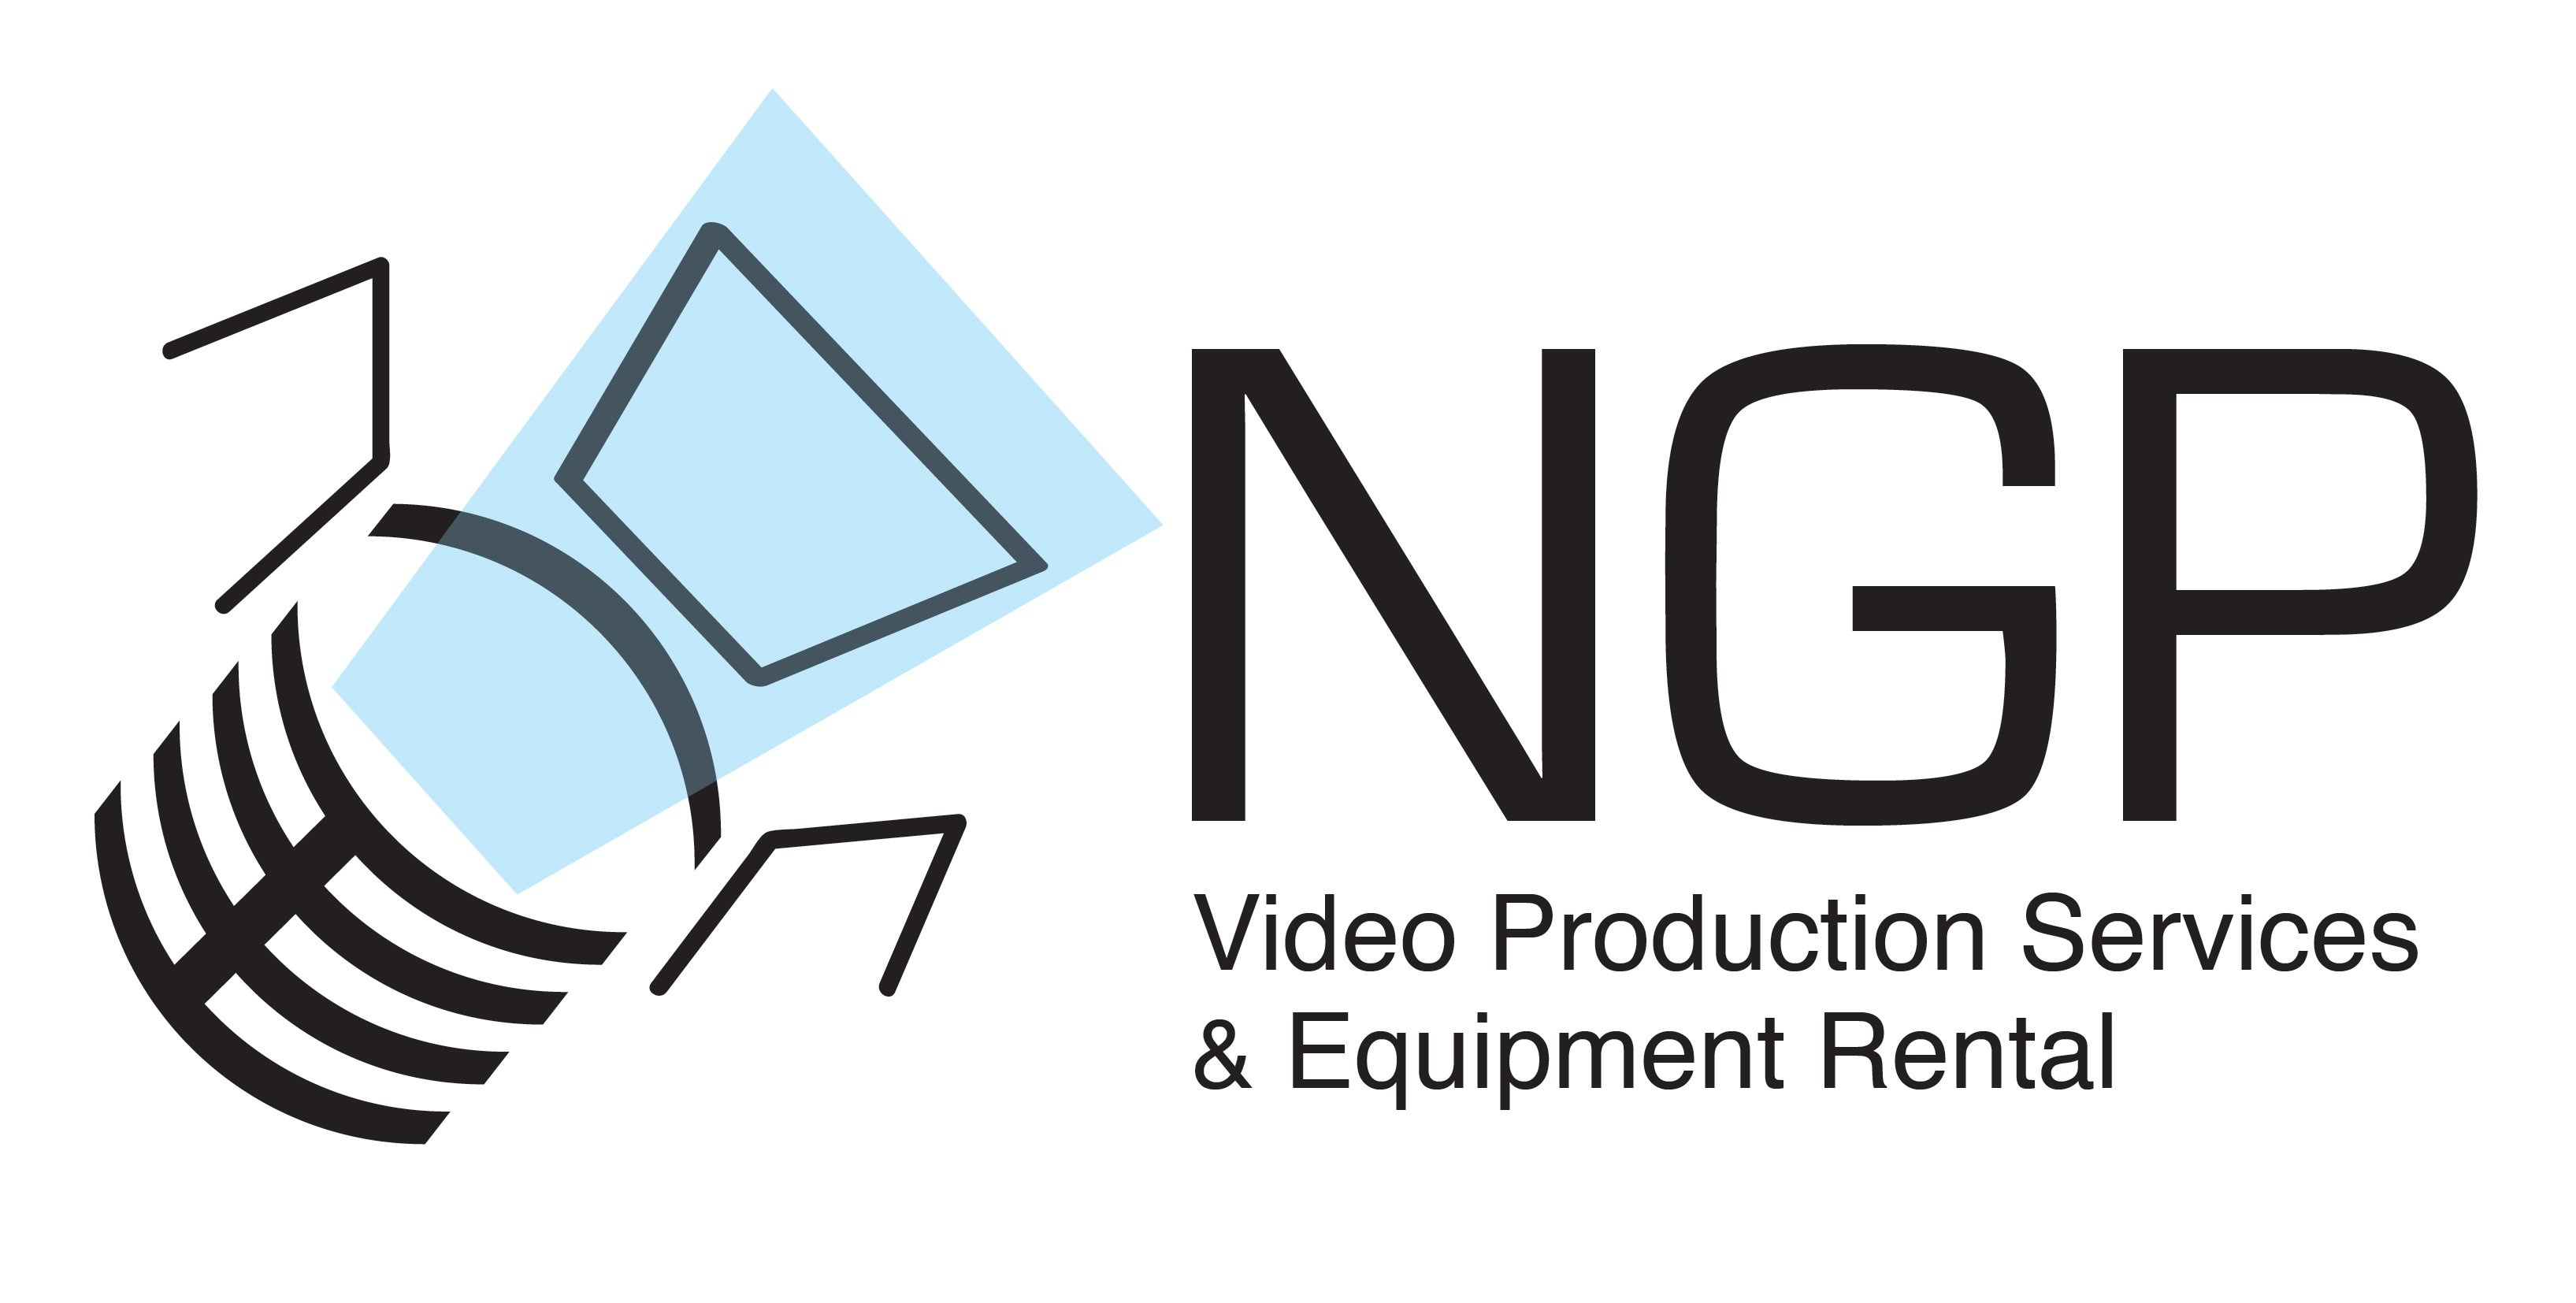 NGP Video Production Services & Equipment Rental